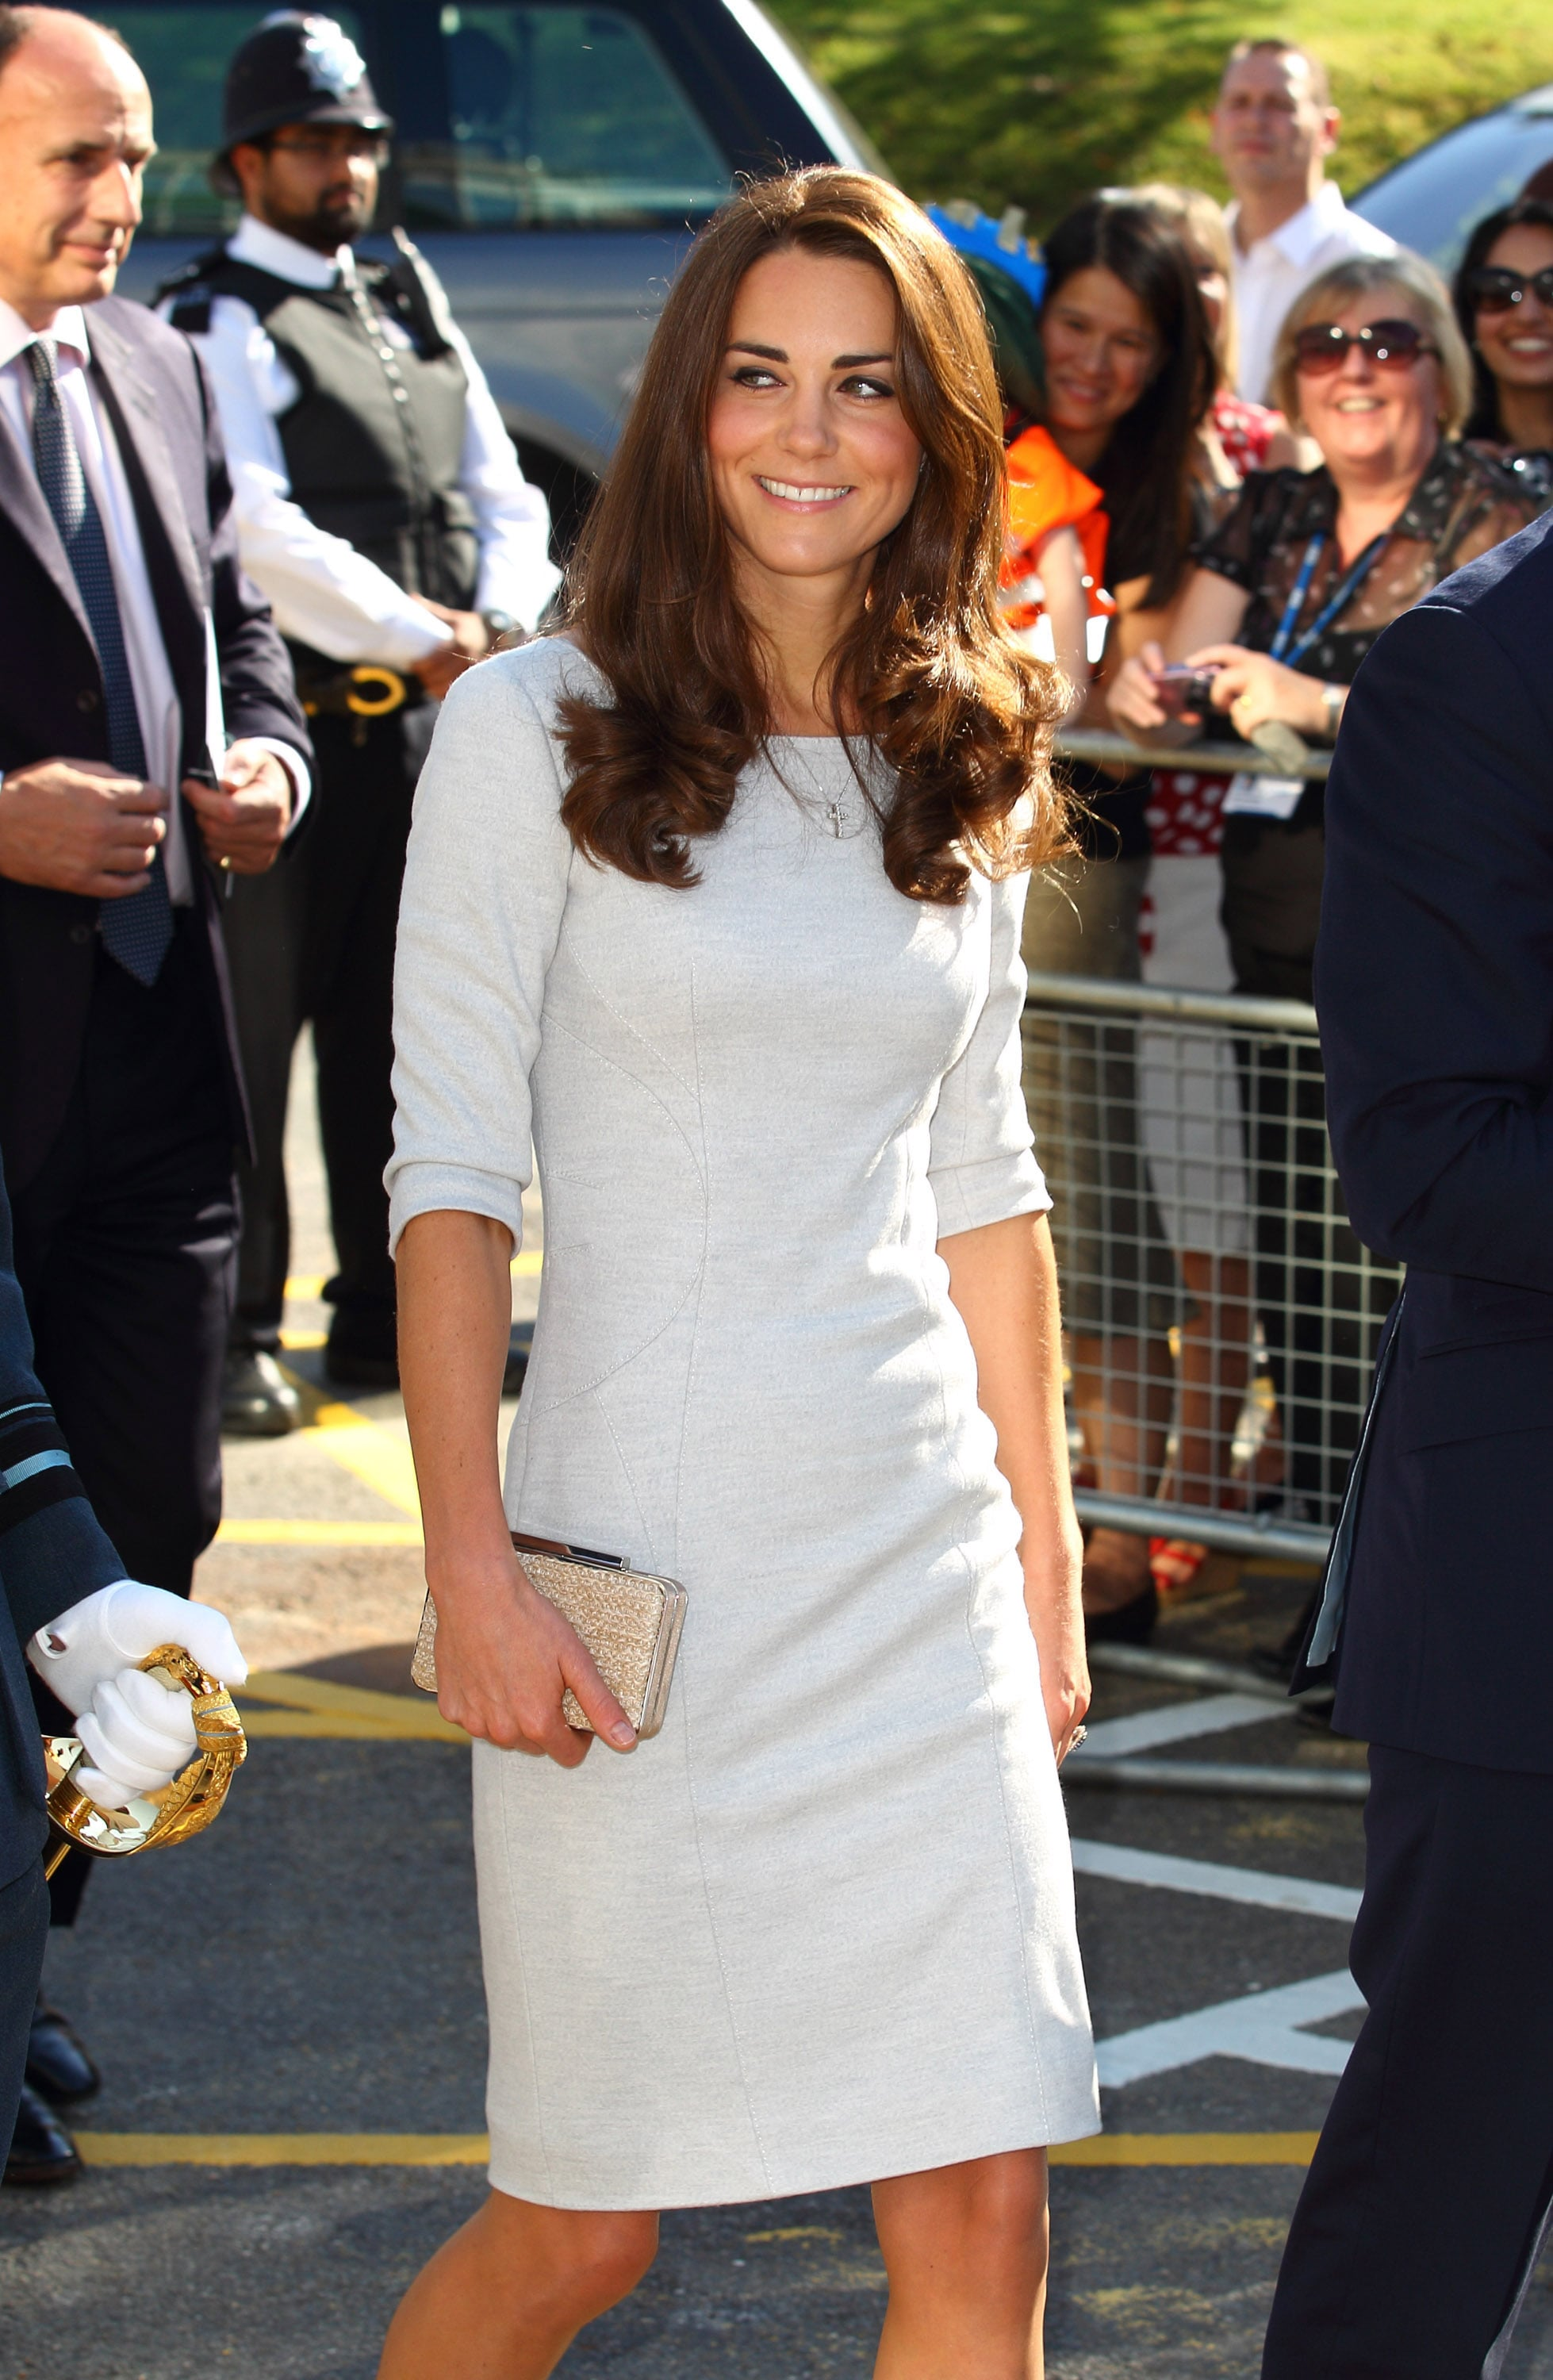 Kate Middleton walking into the Royal Marsden Hospital.